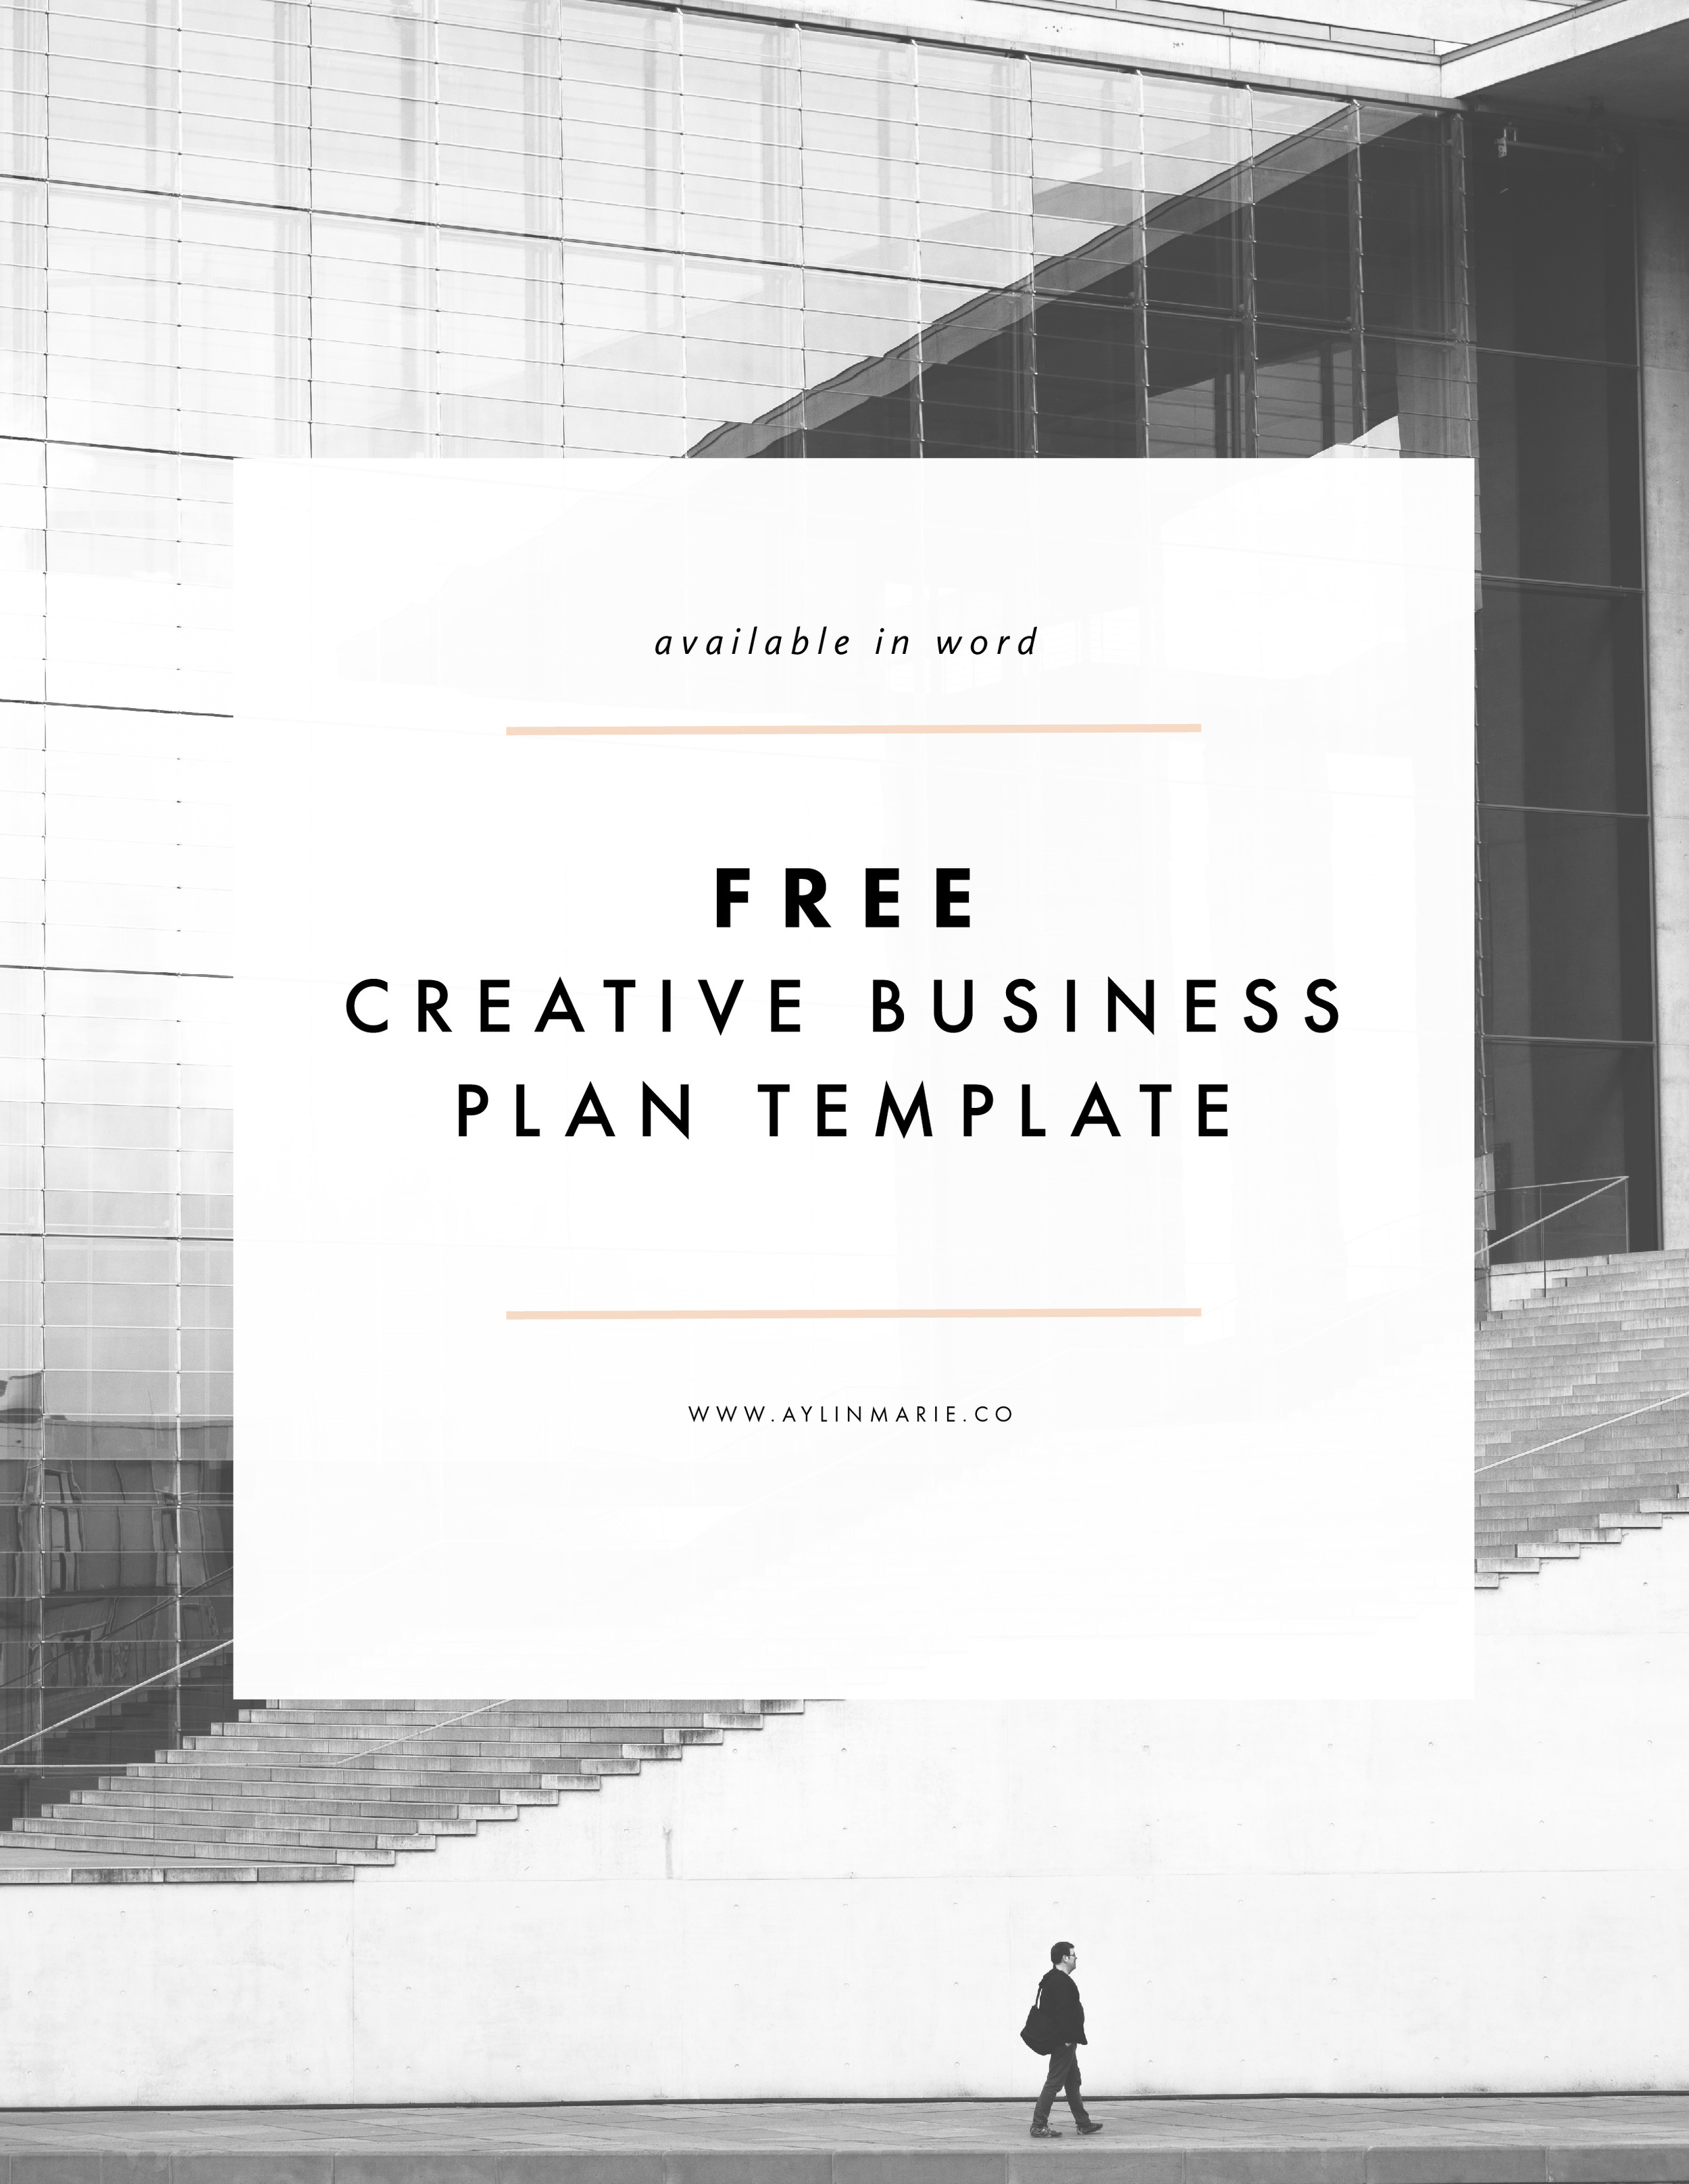 Freebie creative business plan template aylin marie freebie creative business plan template accmission Images